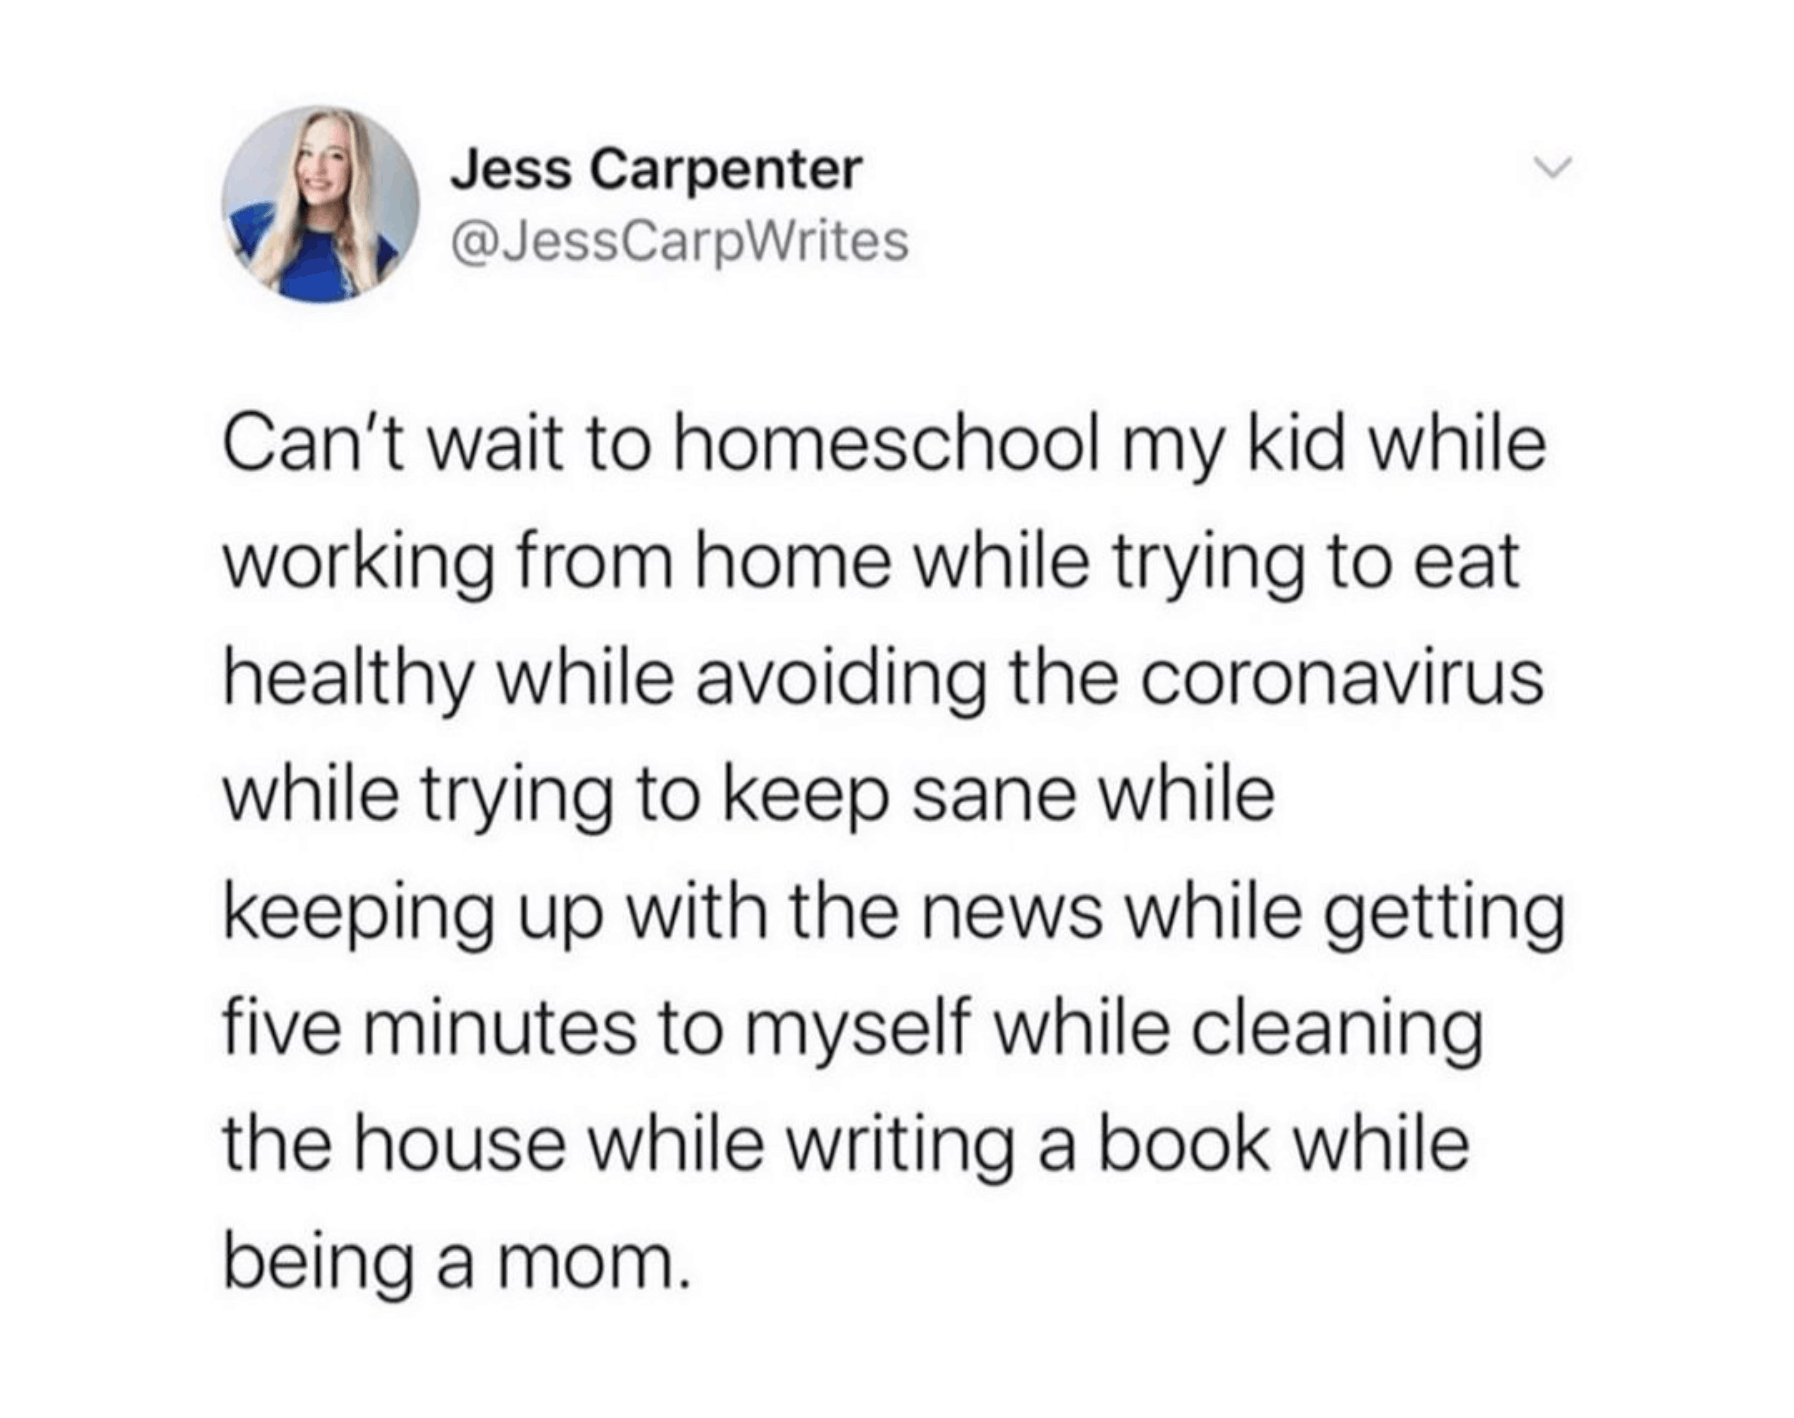 "Jess Carpenter on IG: ""Can't wait to homeschool my kid while working from home while trying to eat healthy while avoiding the coronavirus while trying to keep sane while keeping up with the news while getting five minutes to myself while cleaning the house while writing a book while being a mom."""